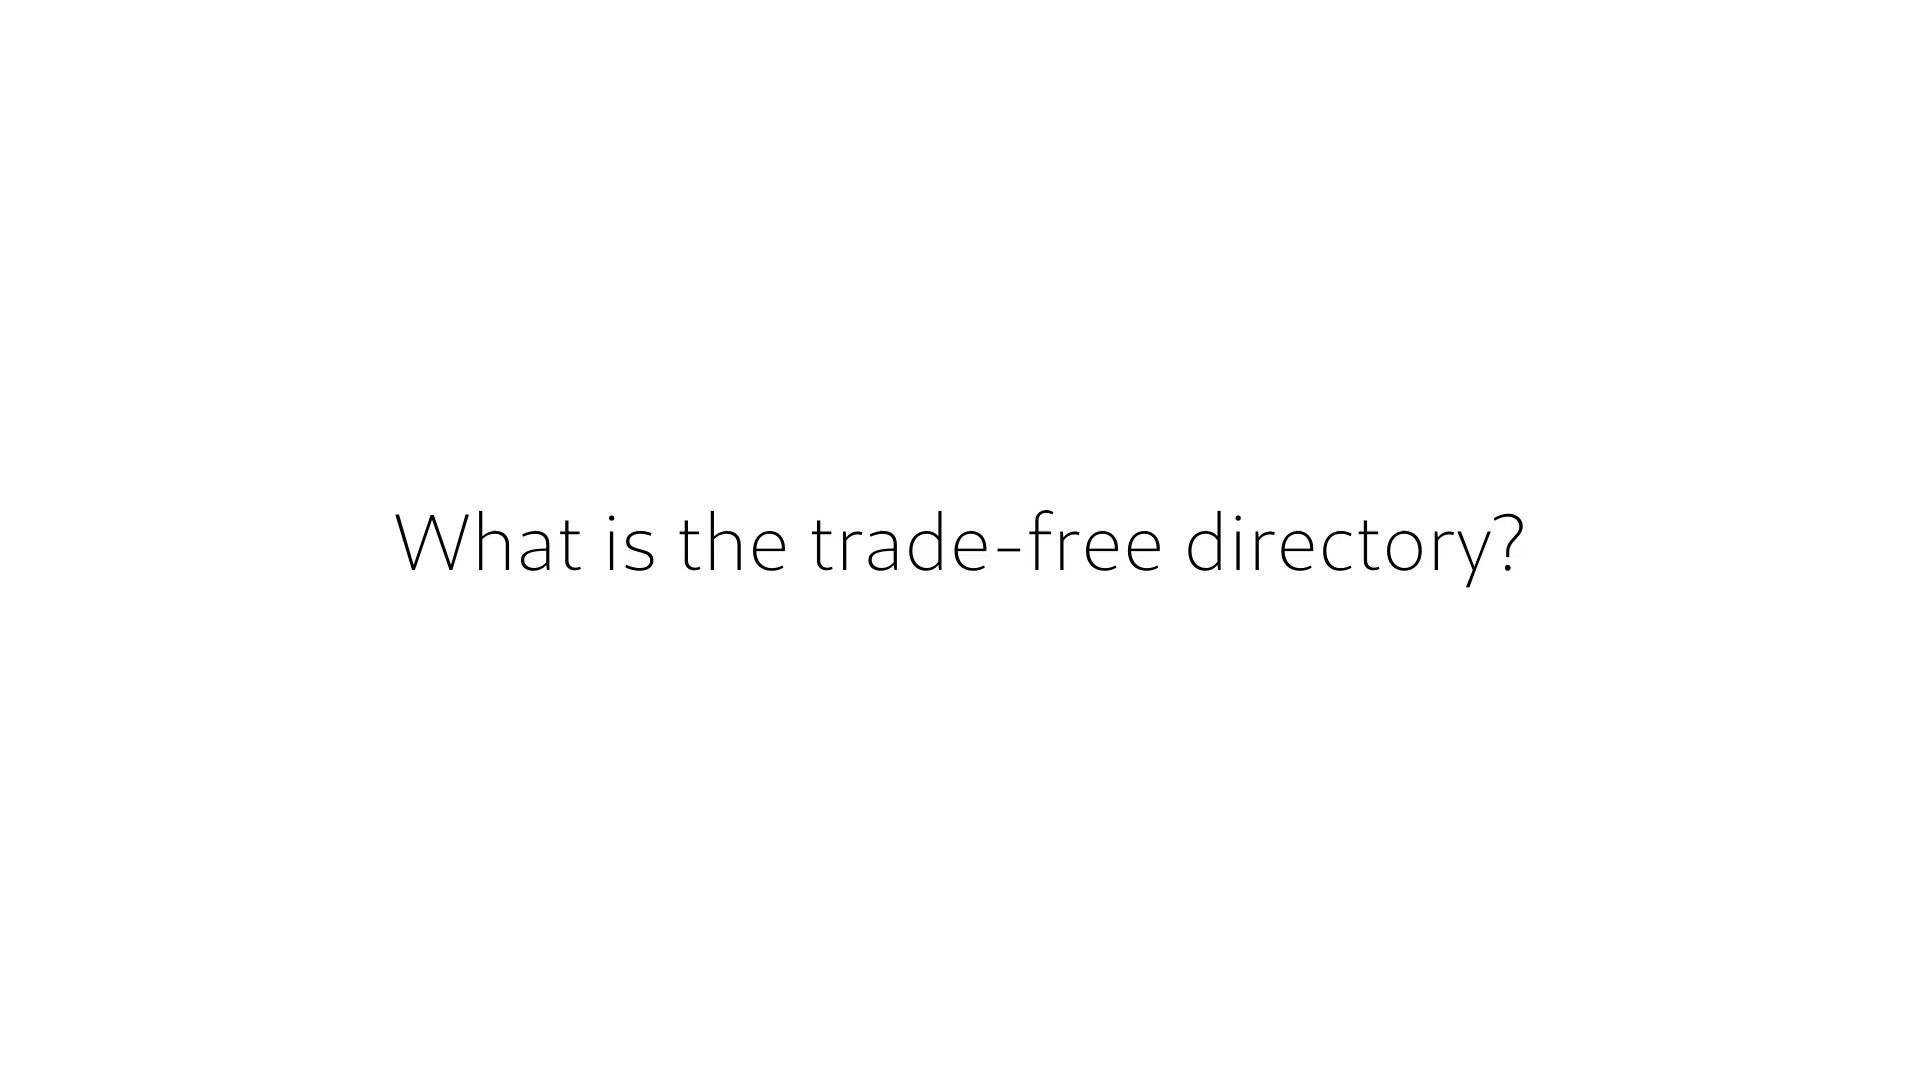 12. What is the trade-free directory?